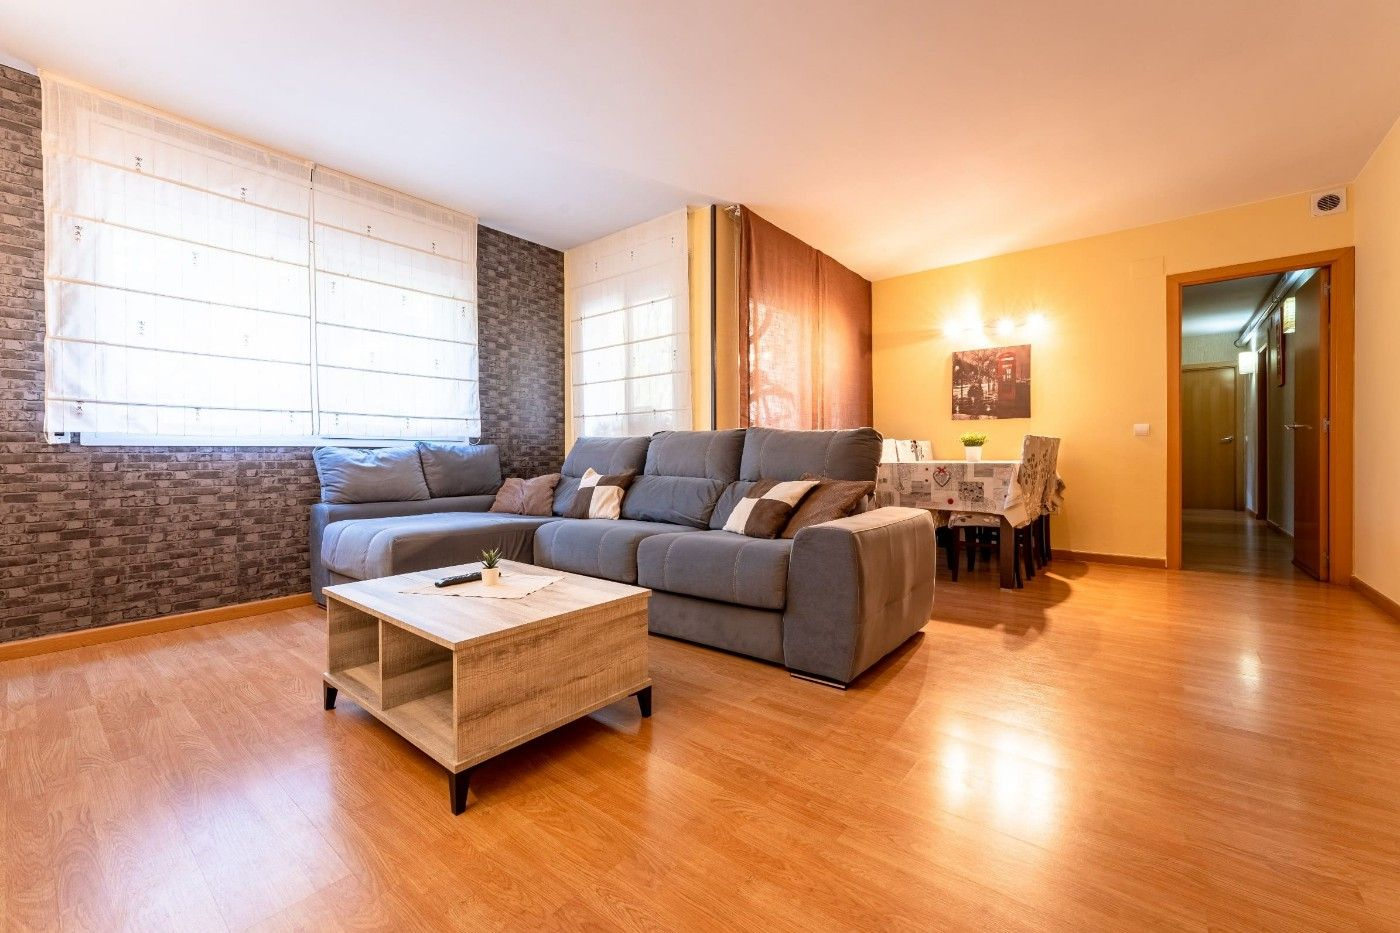 Flat in Carrer eixample (de l´), 8. Piso y parking